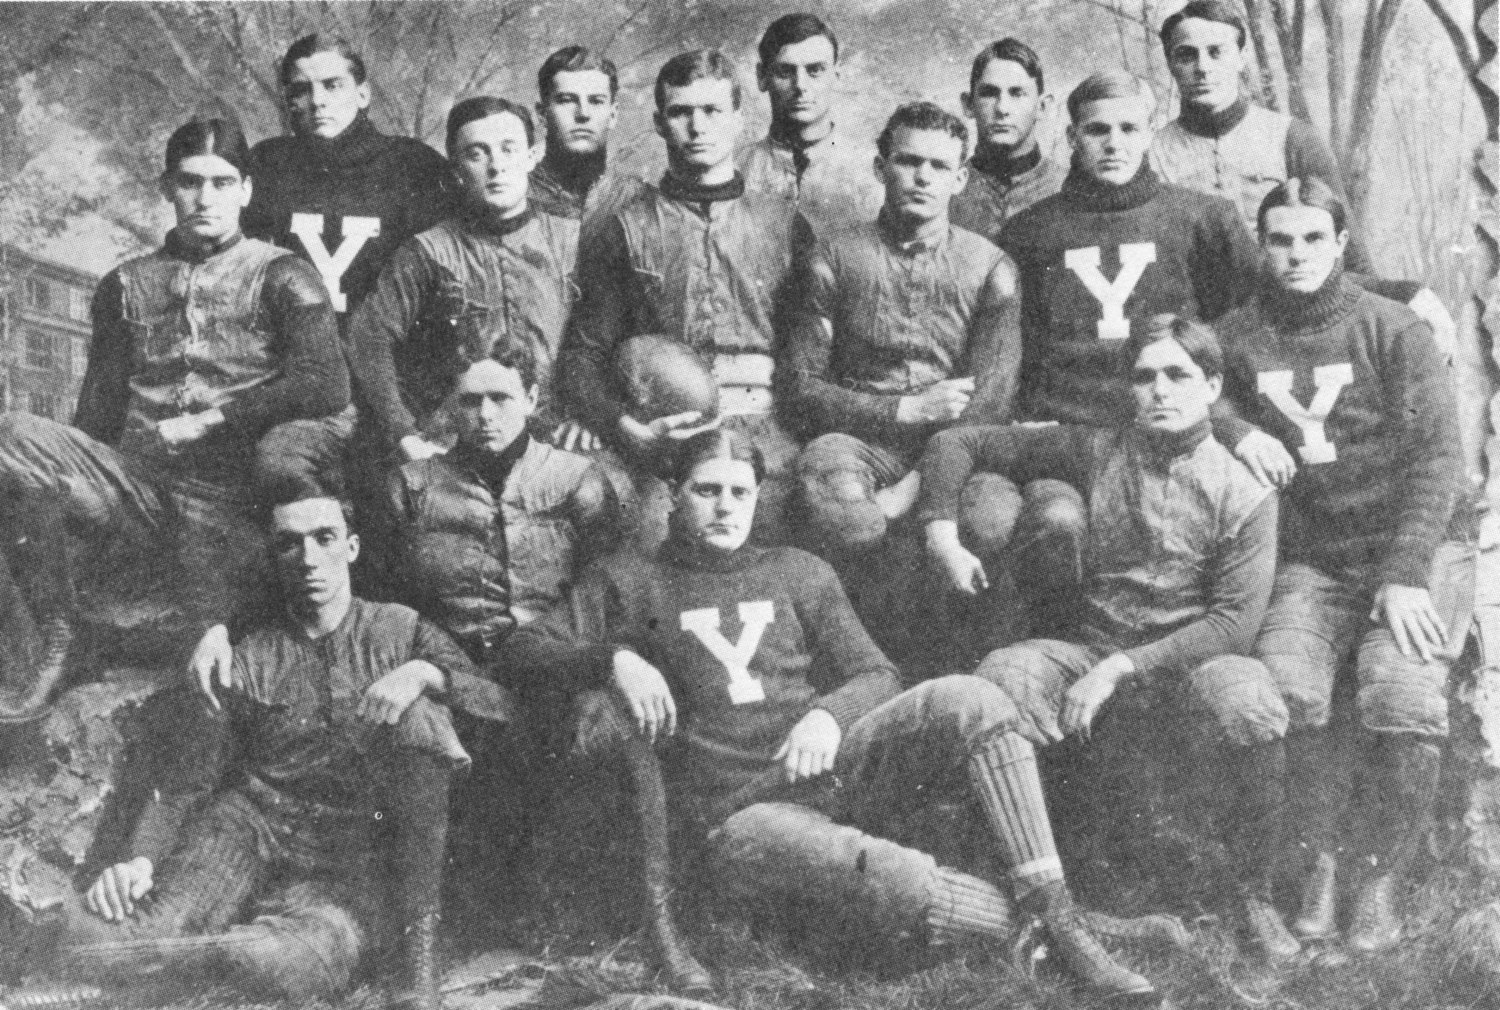 1900 Yale Bulldogs football team - Wikipedia